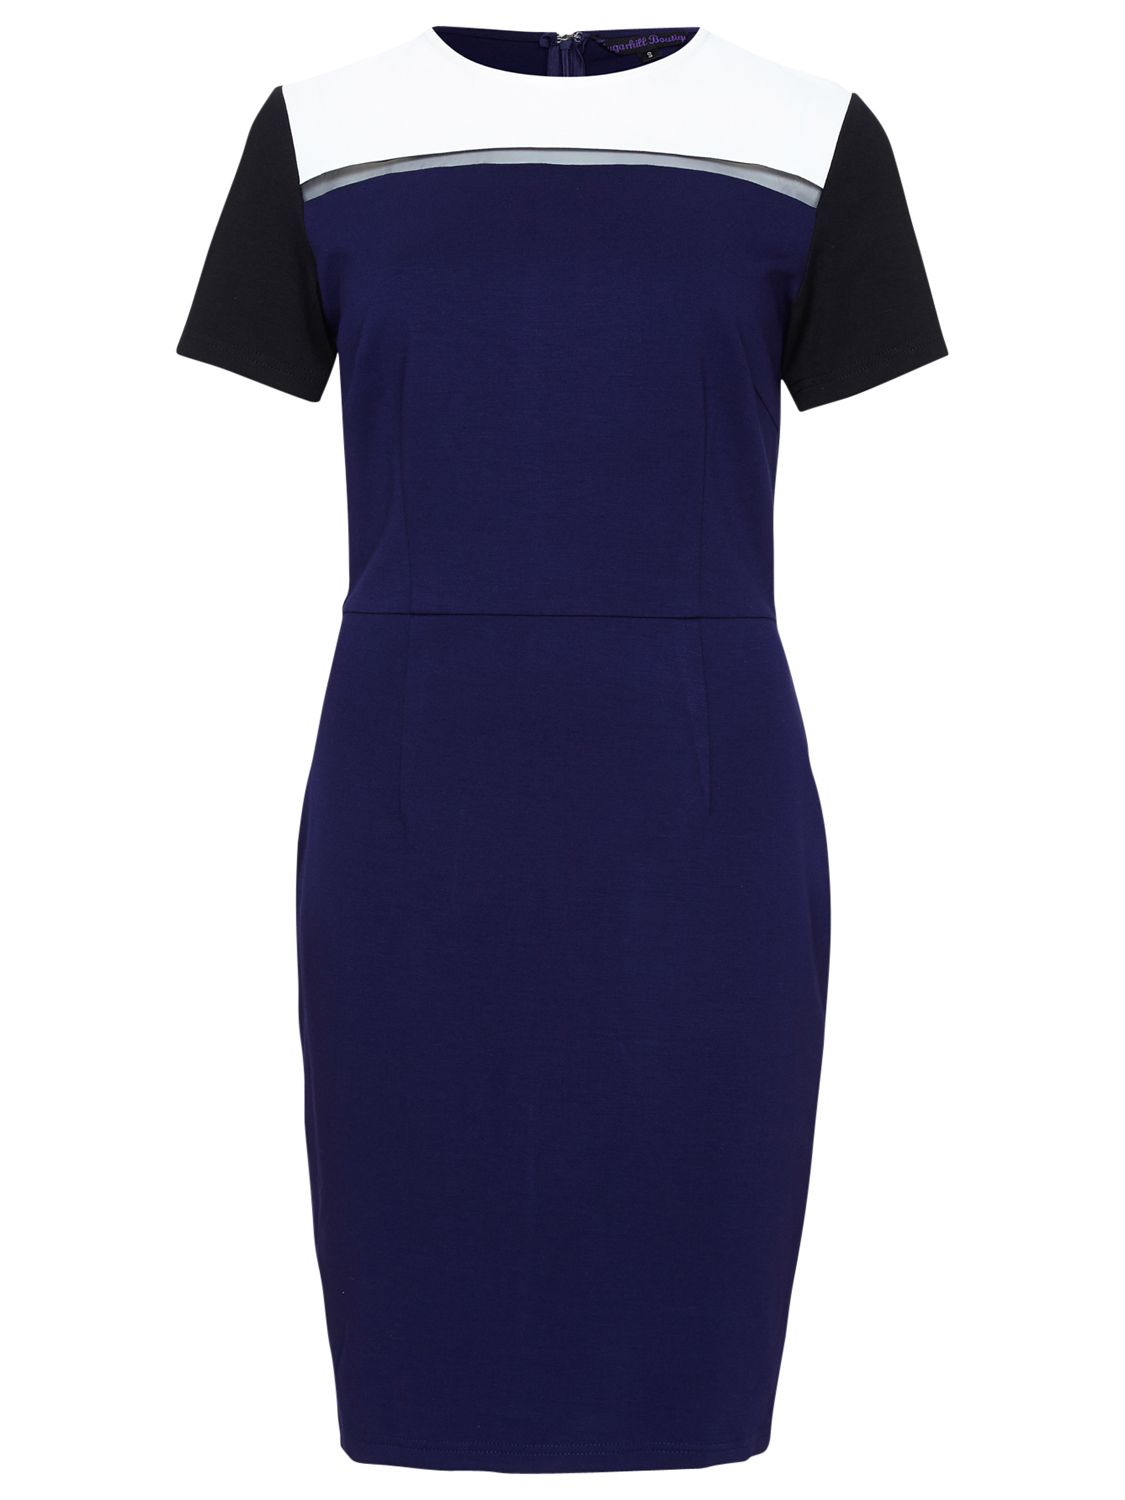 sugarhill boutique heather dress navy, sugarhill, boutique, heather, dress, navy, sugarhill boutique, 8|12, clearance, womenswear offers, womens dresses offers, women, inactive womenswear, new reductions, womens dresses, special offers, 1587168